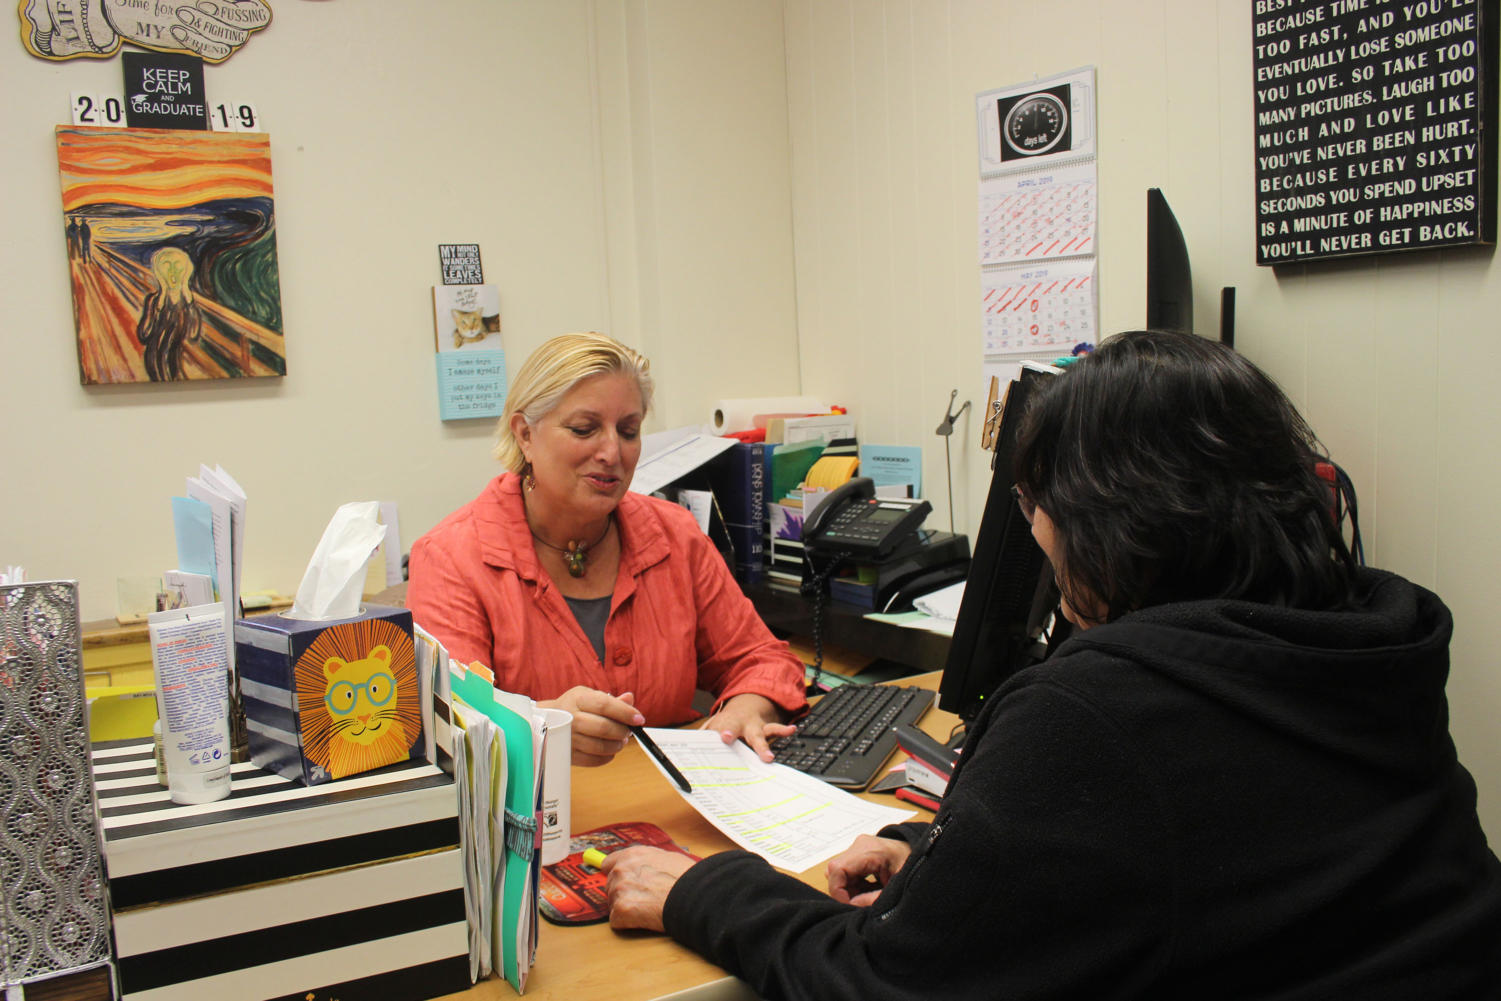 Kris Costopoulos talks with assistant Cathy Moreno (Kulat/LION).